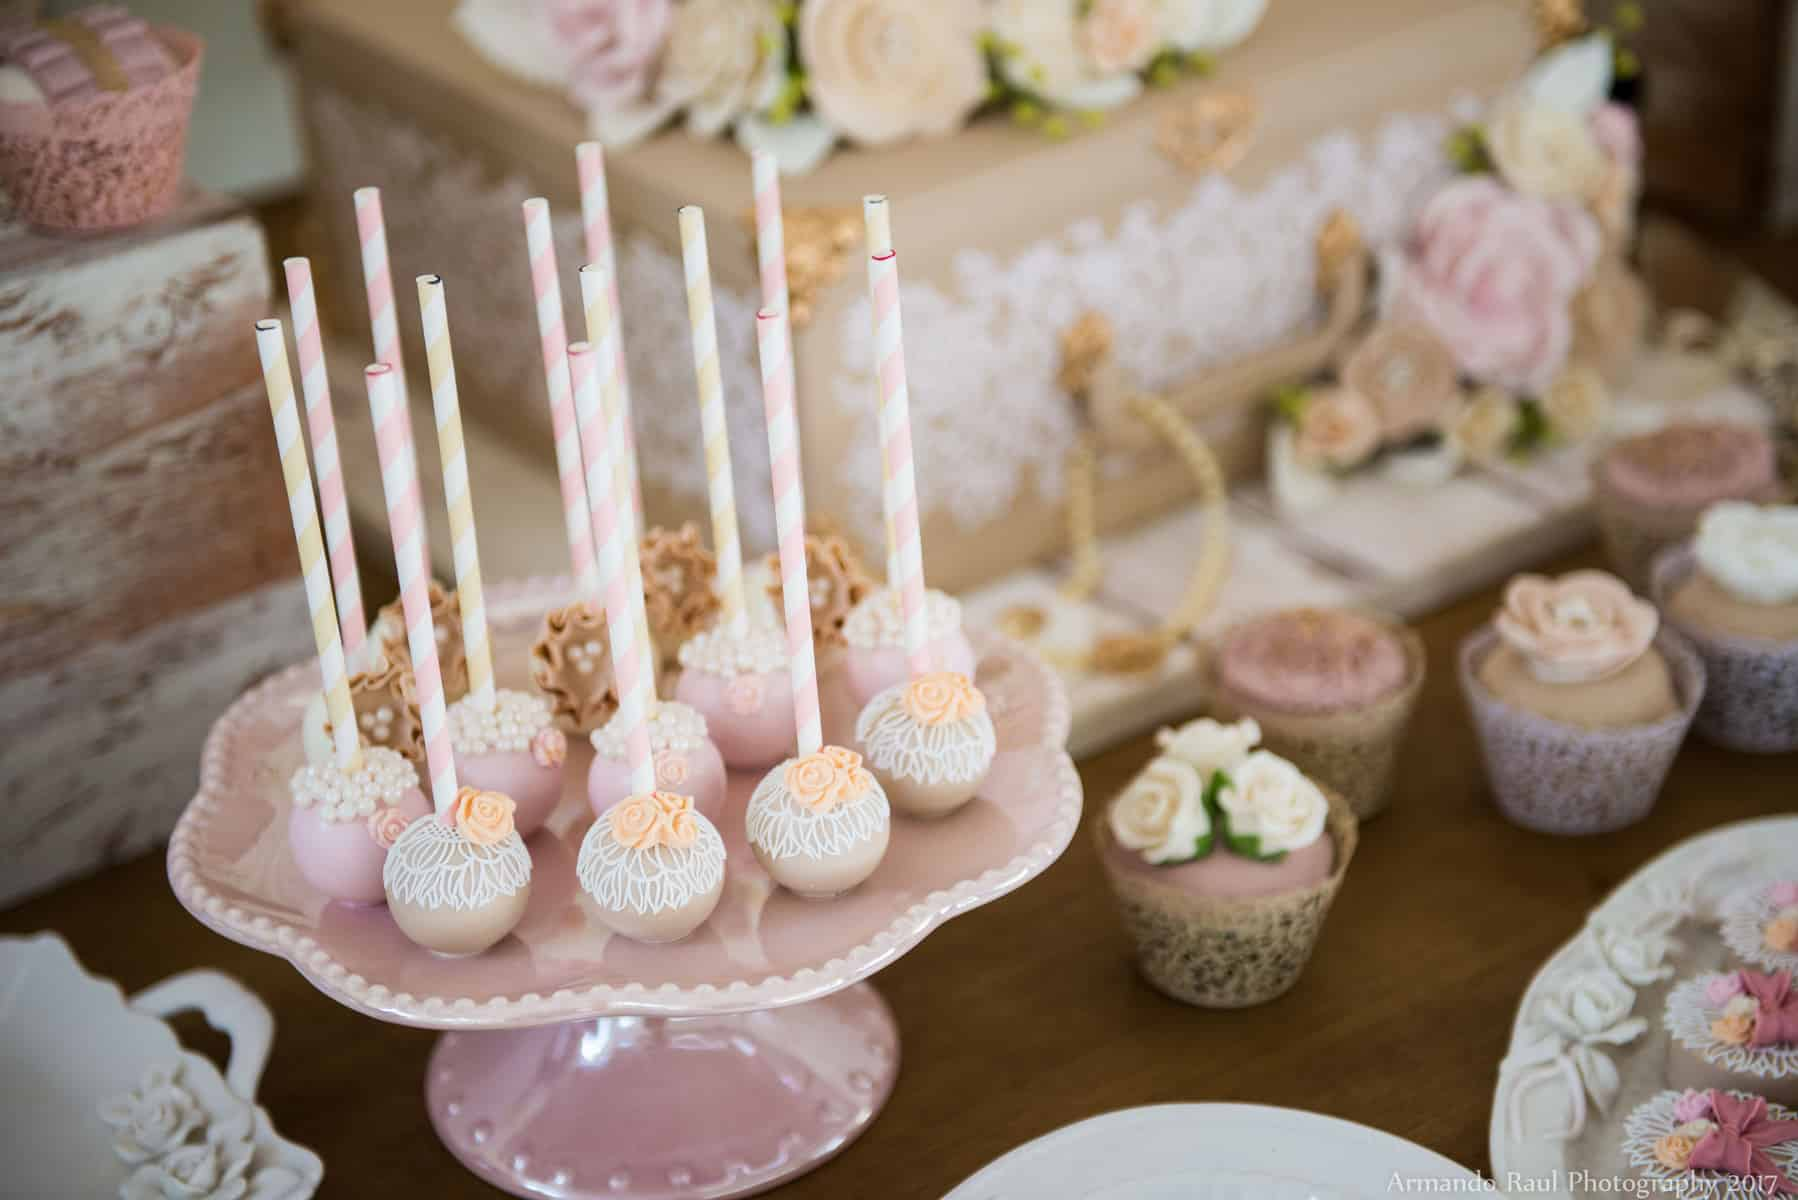 Cake Pops & Cupcakes | Vintage Travel Theme Baby Shower | Baby Girl | You Are My Greatest Adventure | Lace, World Map, Flowers, Cameras, Vintage Decor | Cake, Sweets, Desserts, Lounge Seating Area, World Cuisine, Food Stations, Seating Arrangement | Home Baby Shower | Blush Pink, Beige, Gold, Champagne, White